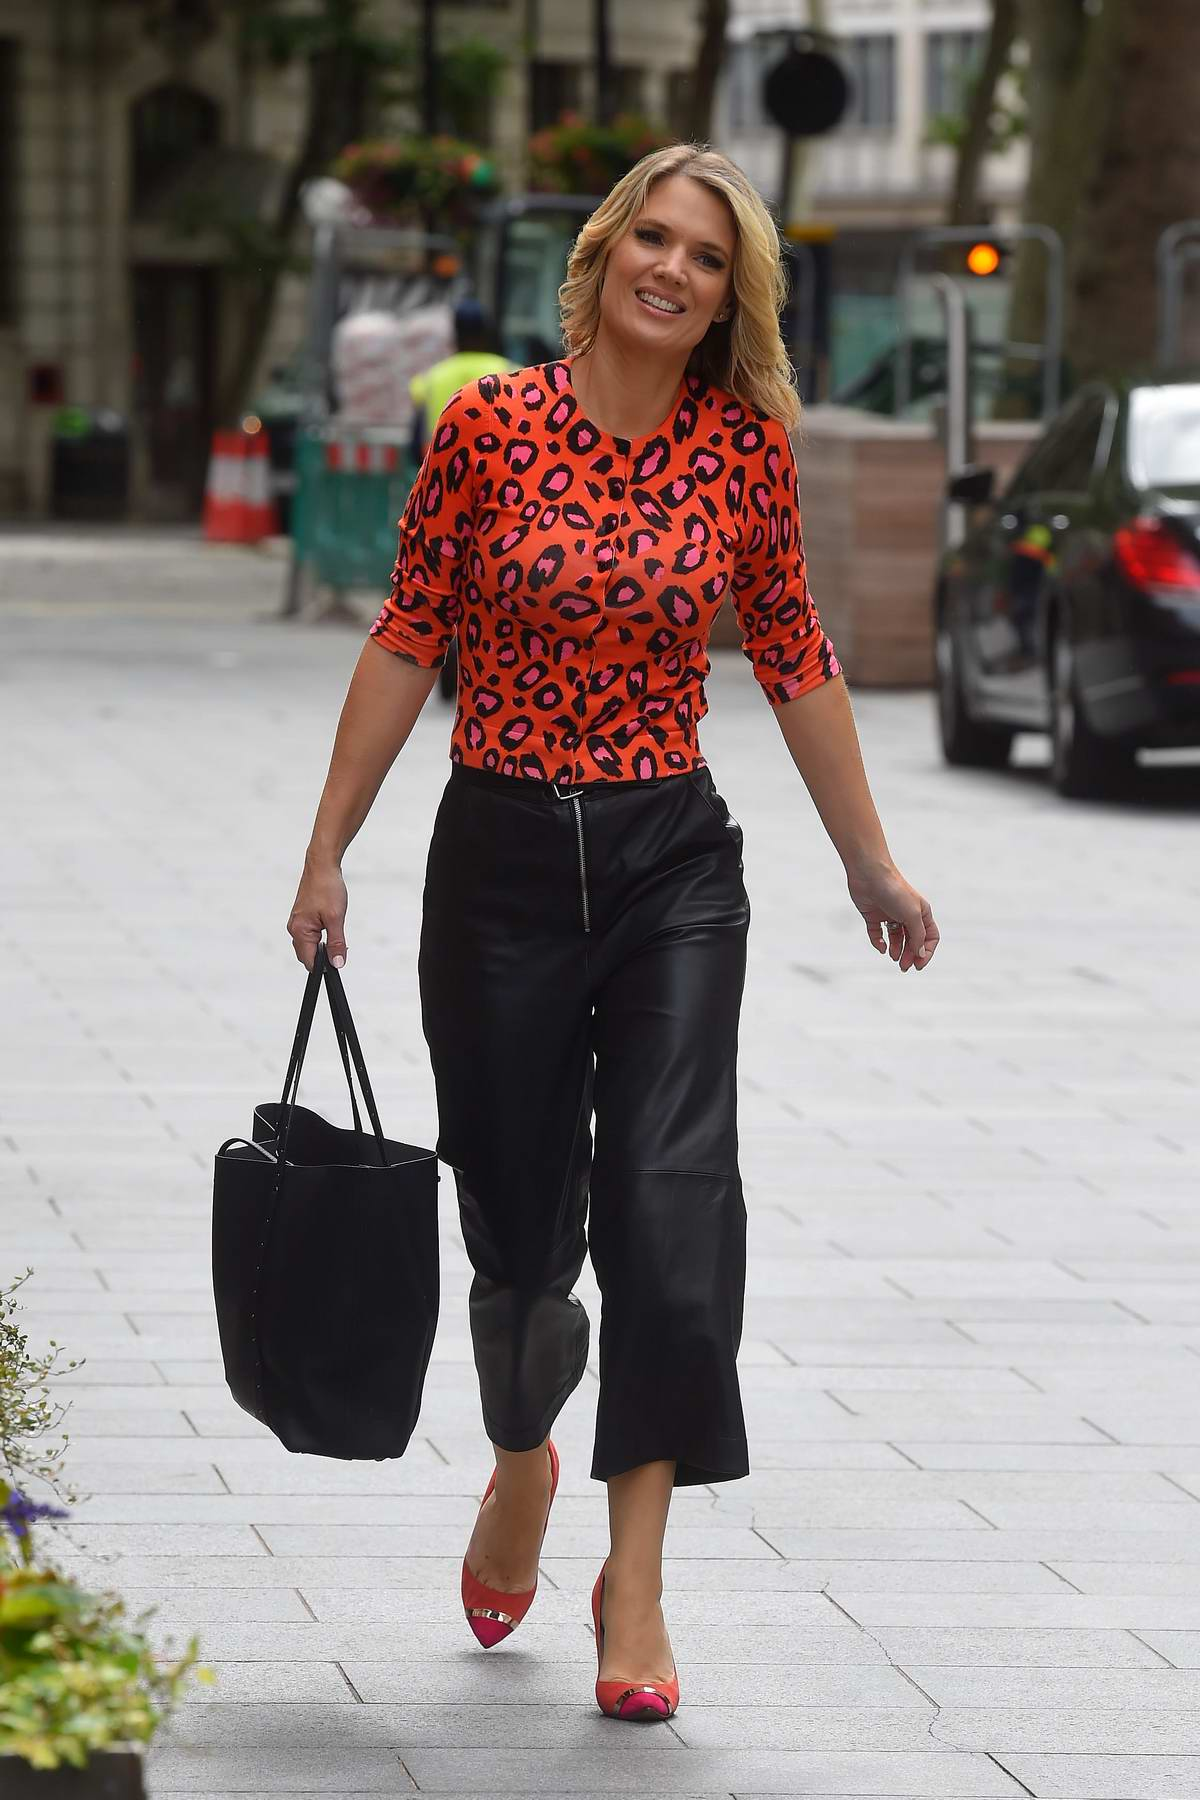 Charlotte Hawkins wears a red top and black leather pants as she arrives at the Global Radio studios in London, UK